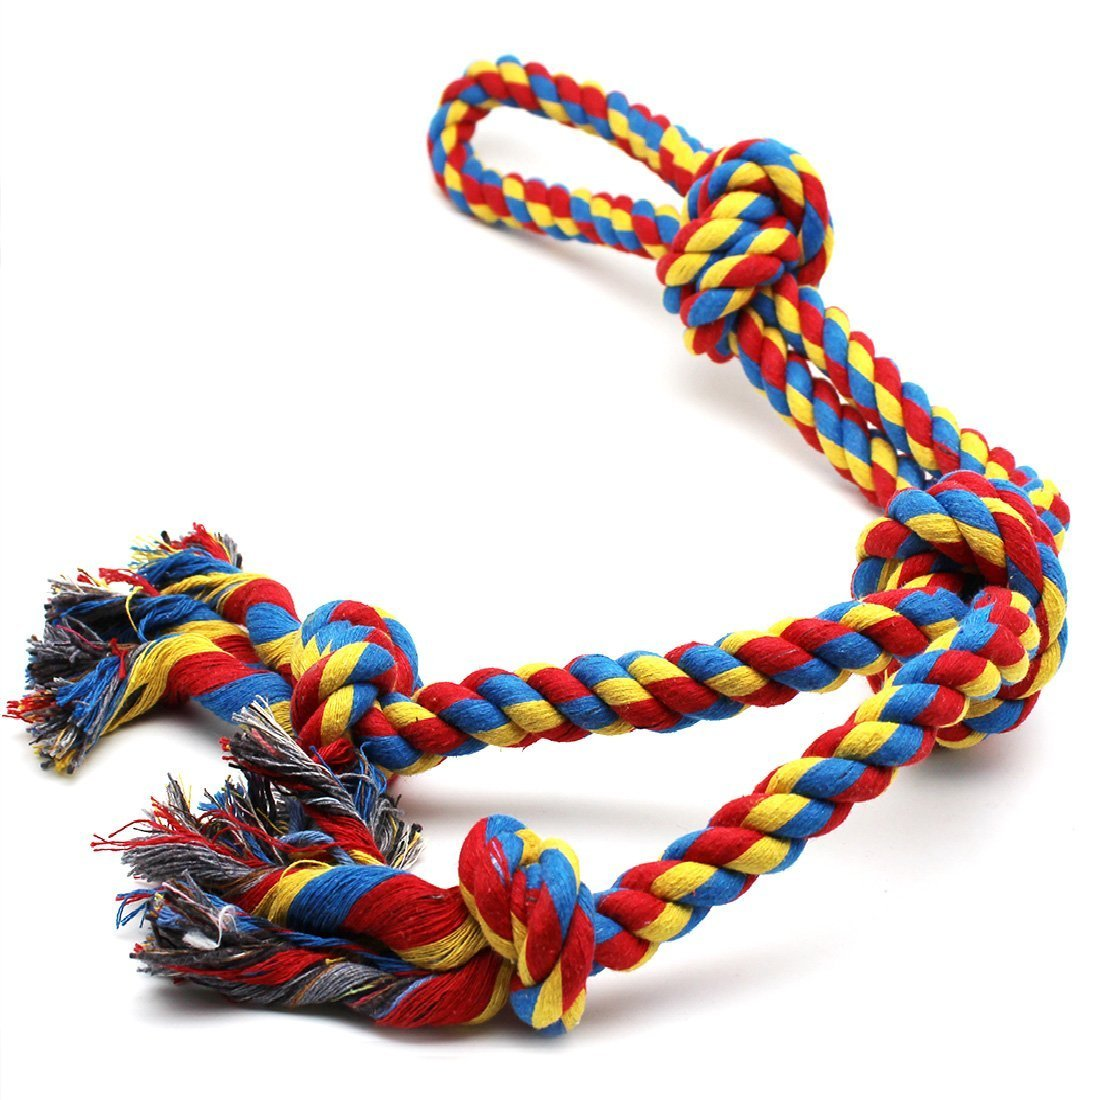 Dog Toys For Large Dogs Rope Aggressive Chewers Indestructible Tug of War Durable 100% Cotton Rope Toy For Large Dogs